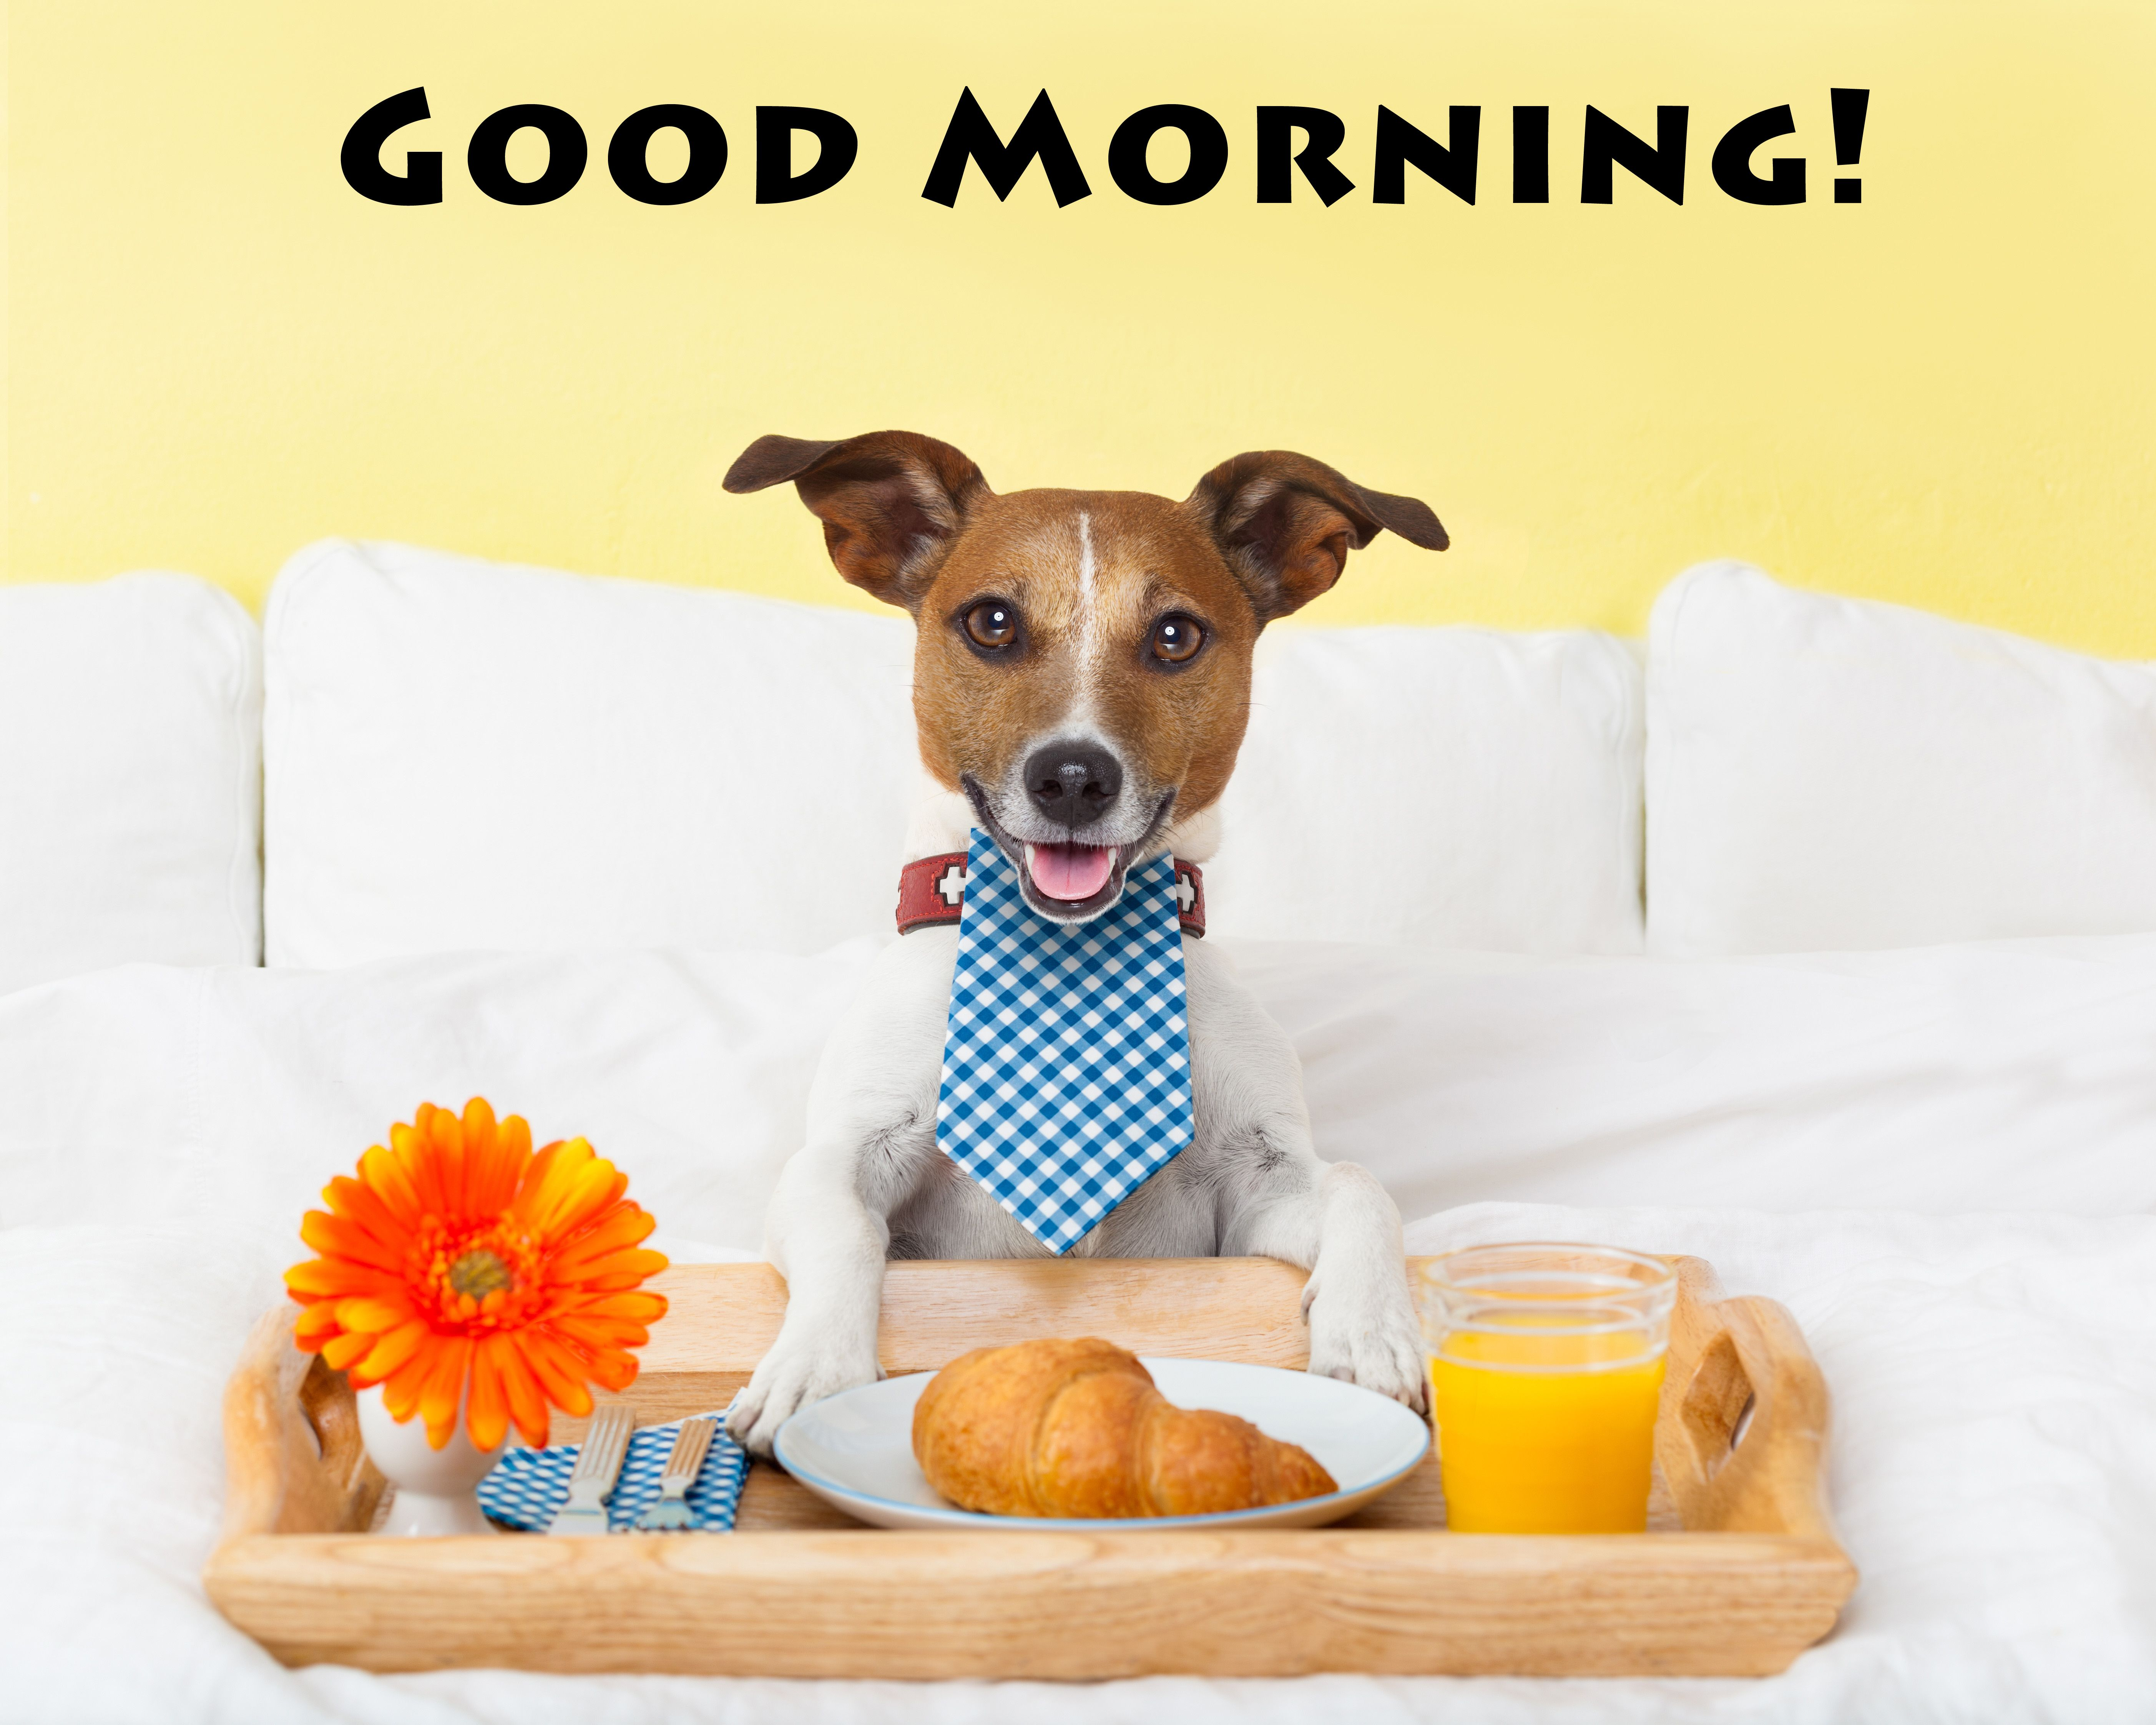 Good morning. Dog eating breakfast in bed. pinned by www